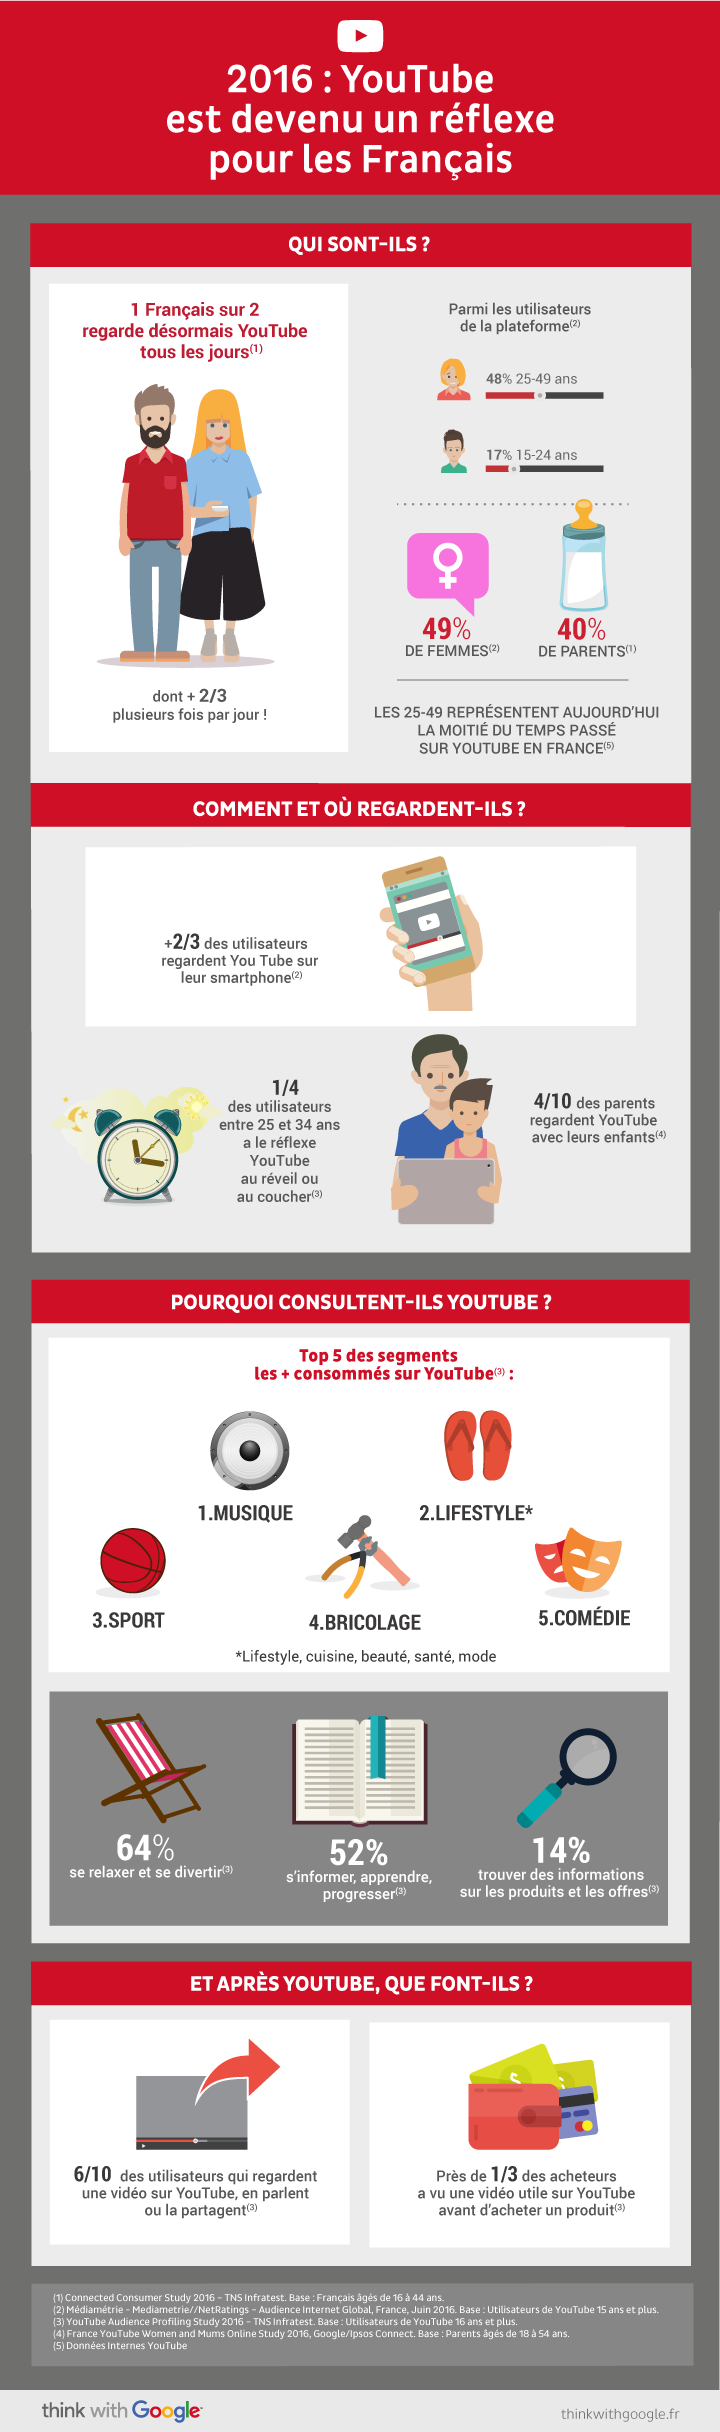 infographie_Audience_YouTube_France_2016